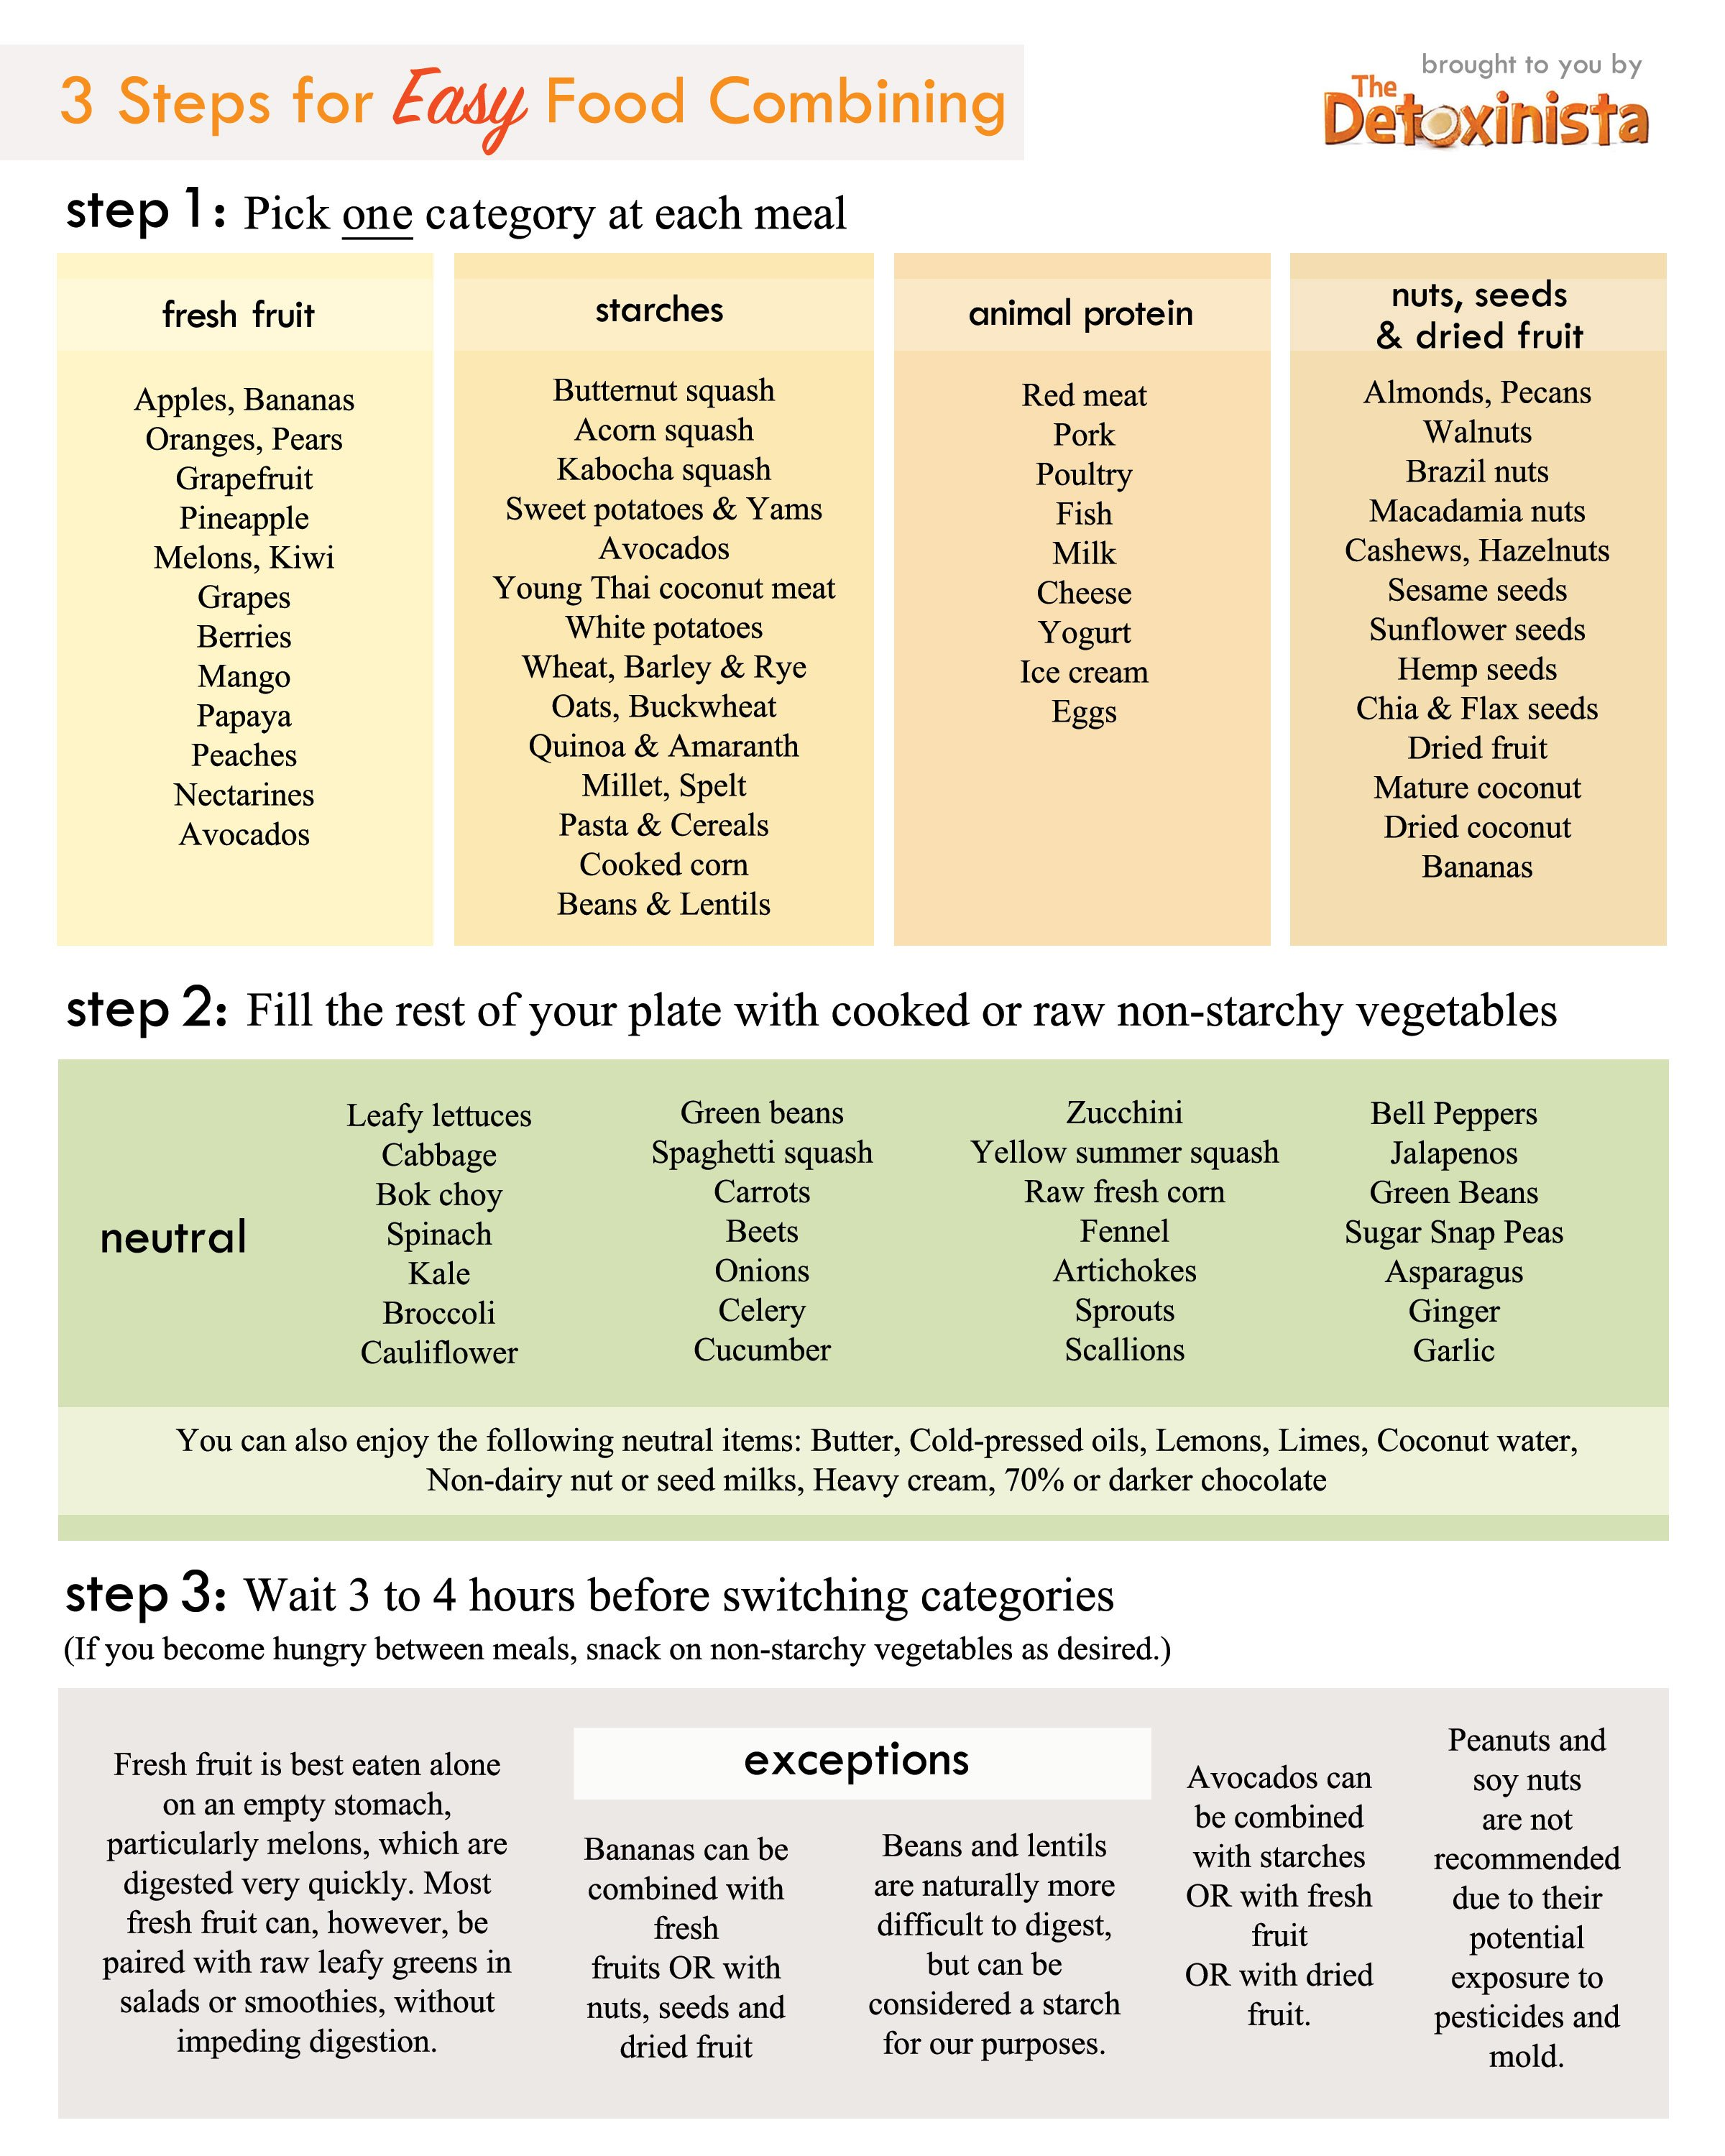 food combining chart showing you how to properly combine foods